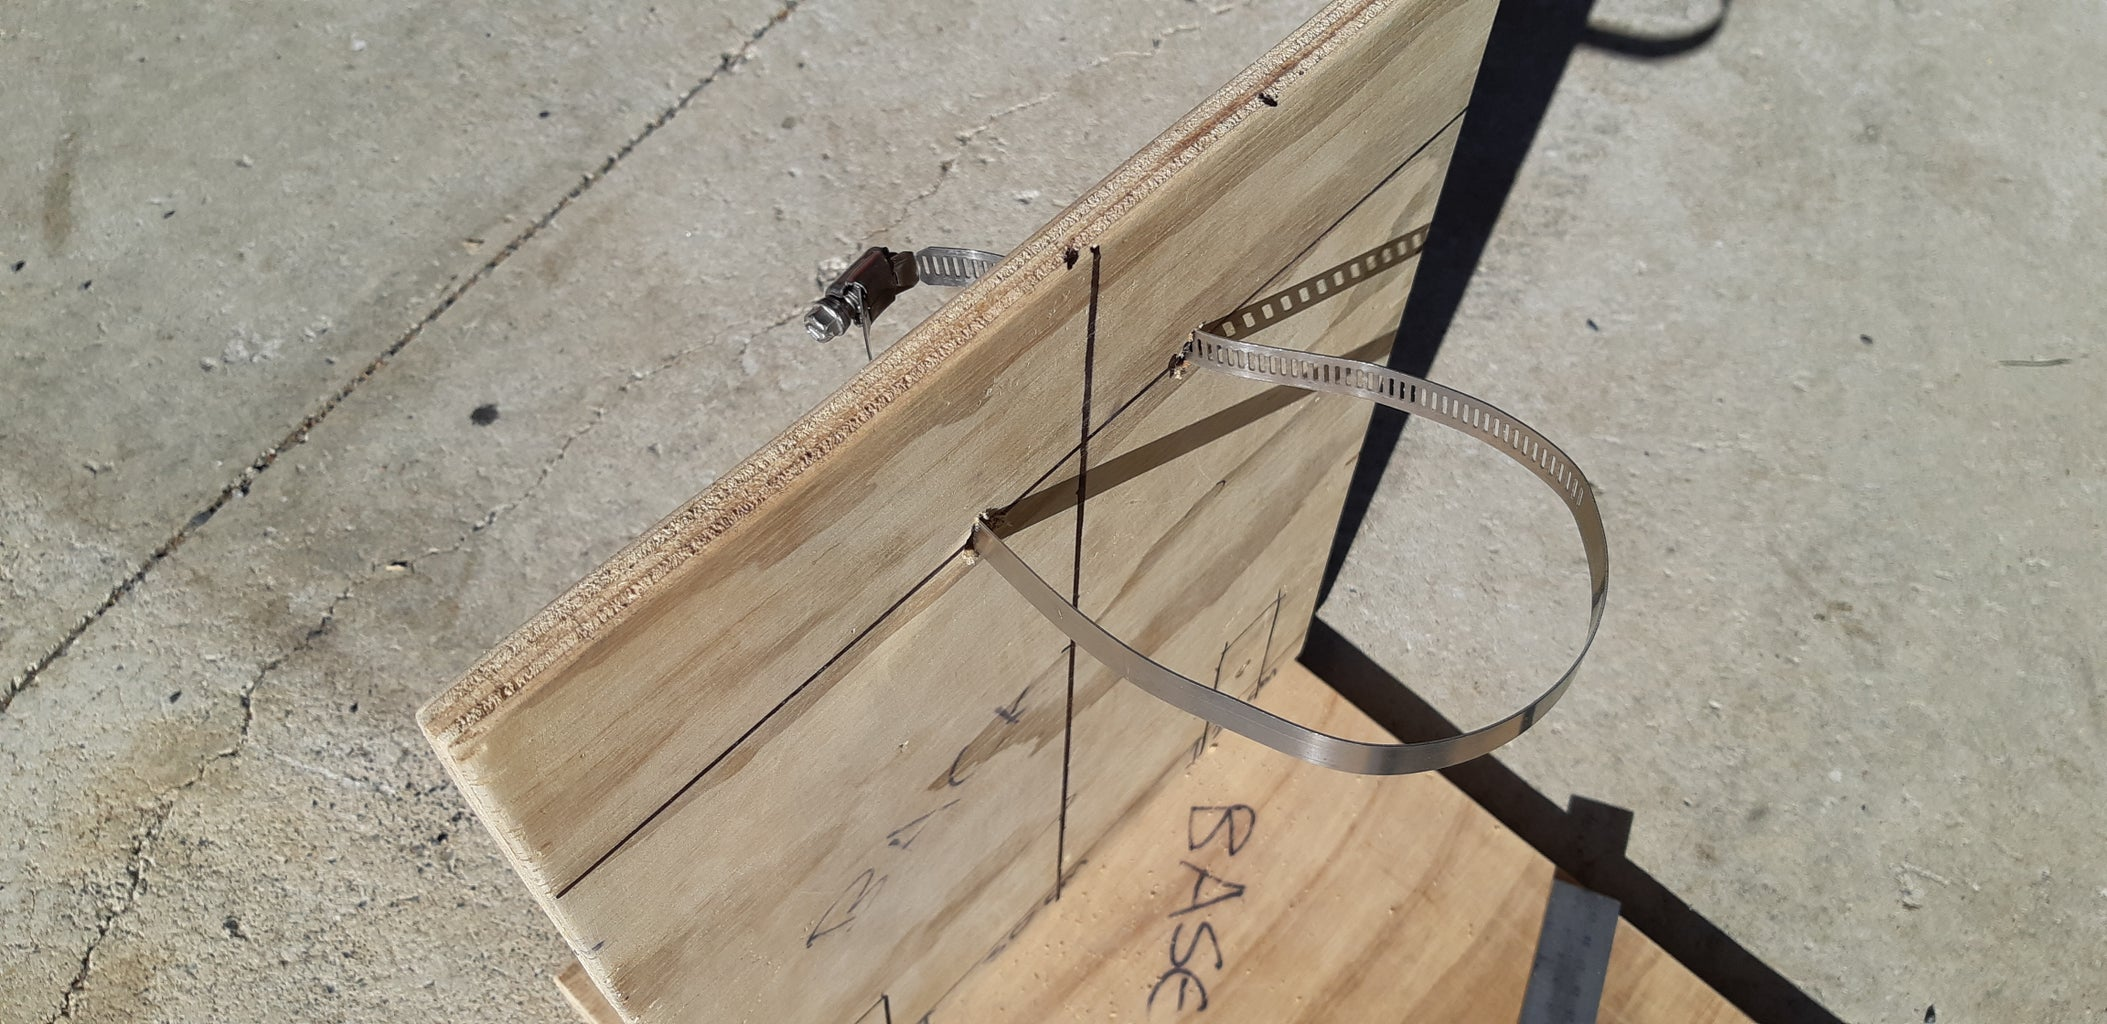 ATTACHING THE SODA BOTTLE TO THE BACK BOARD